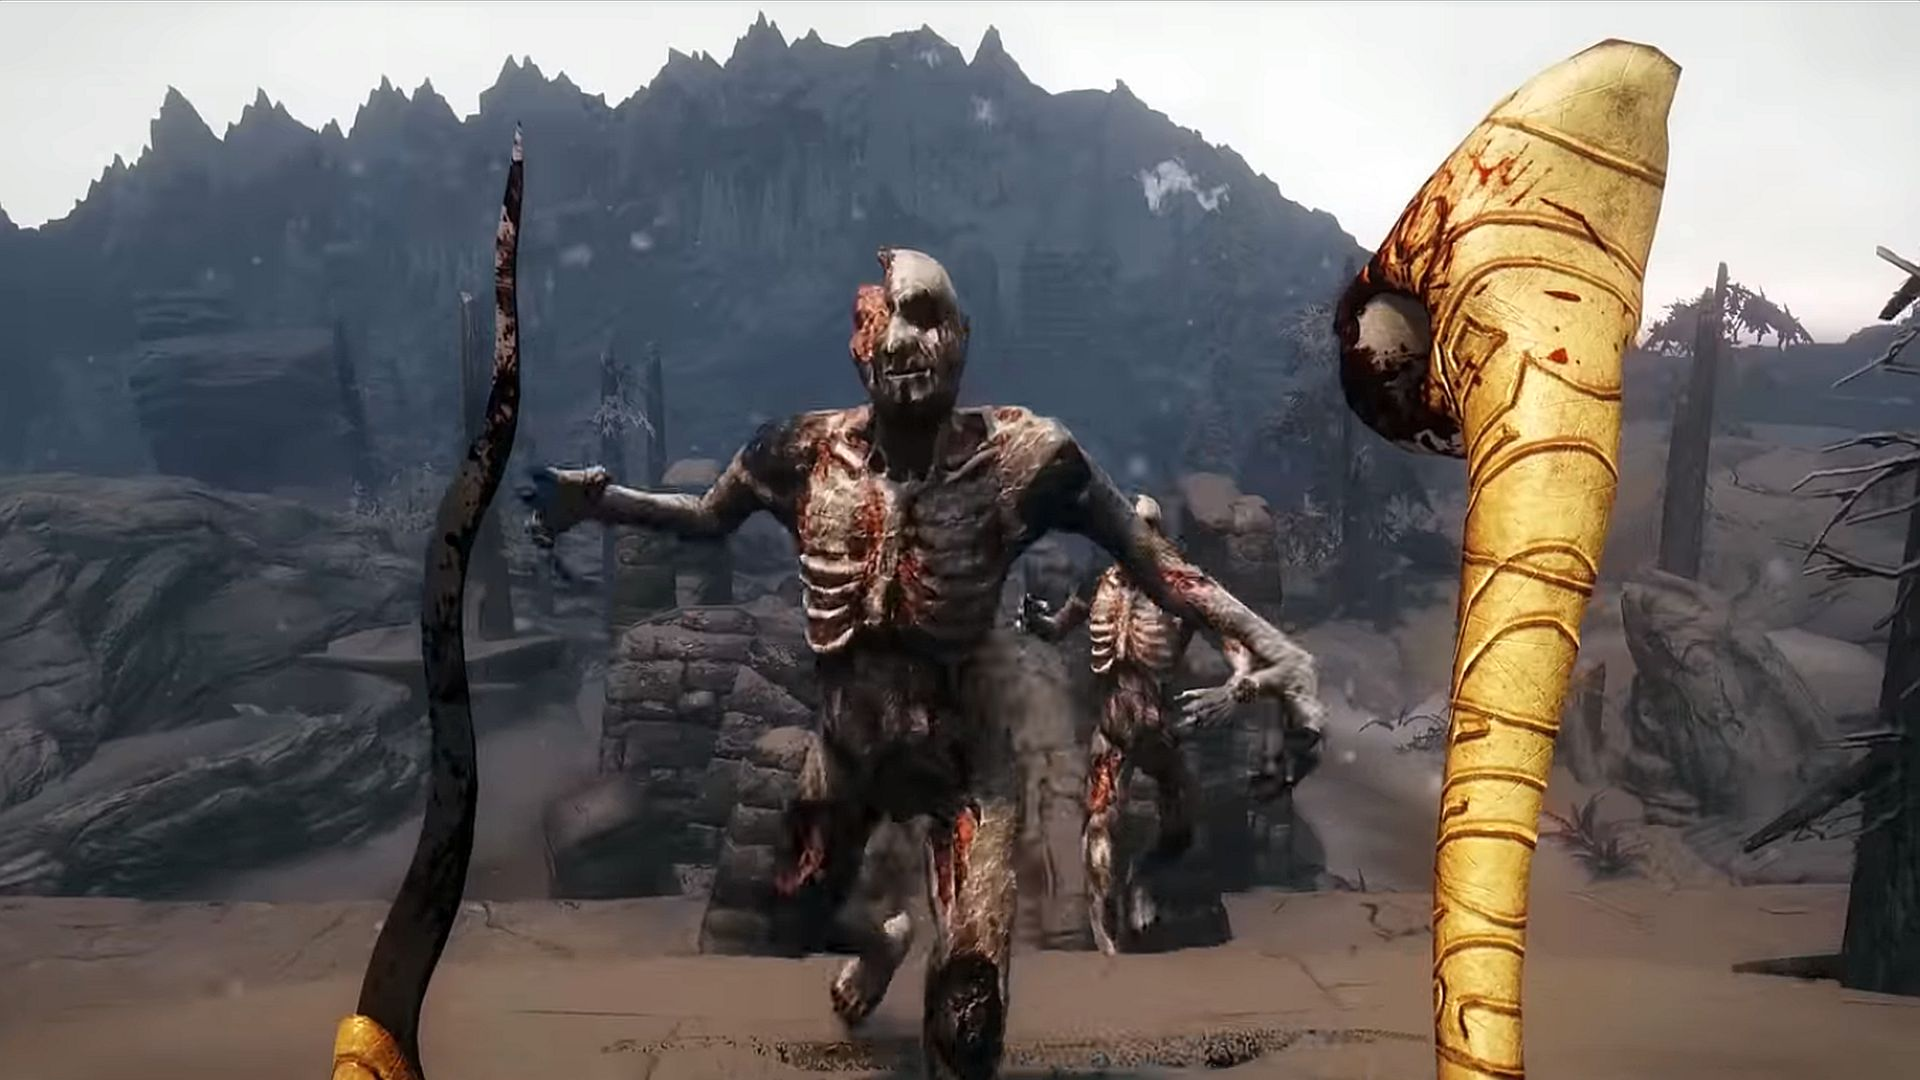 beyond skyrim  morrowind trailer teases the story and